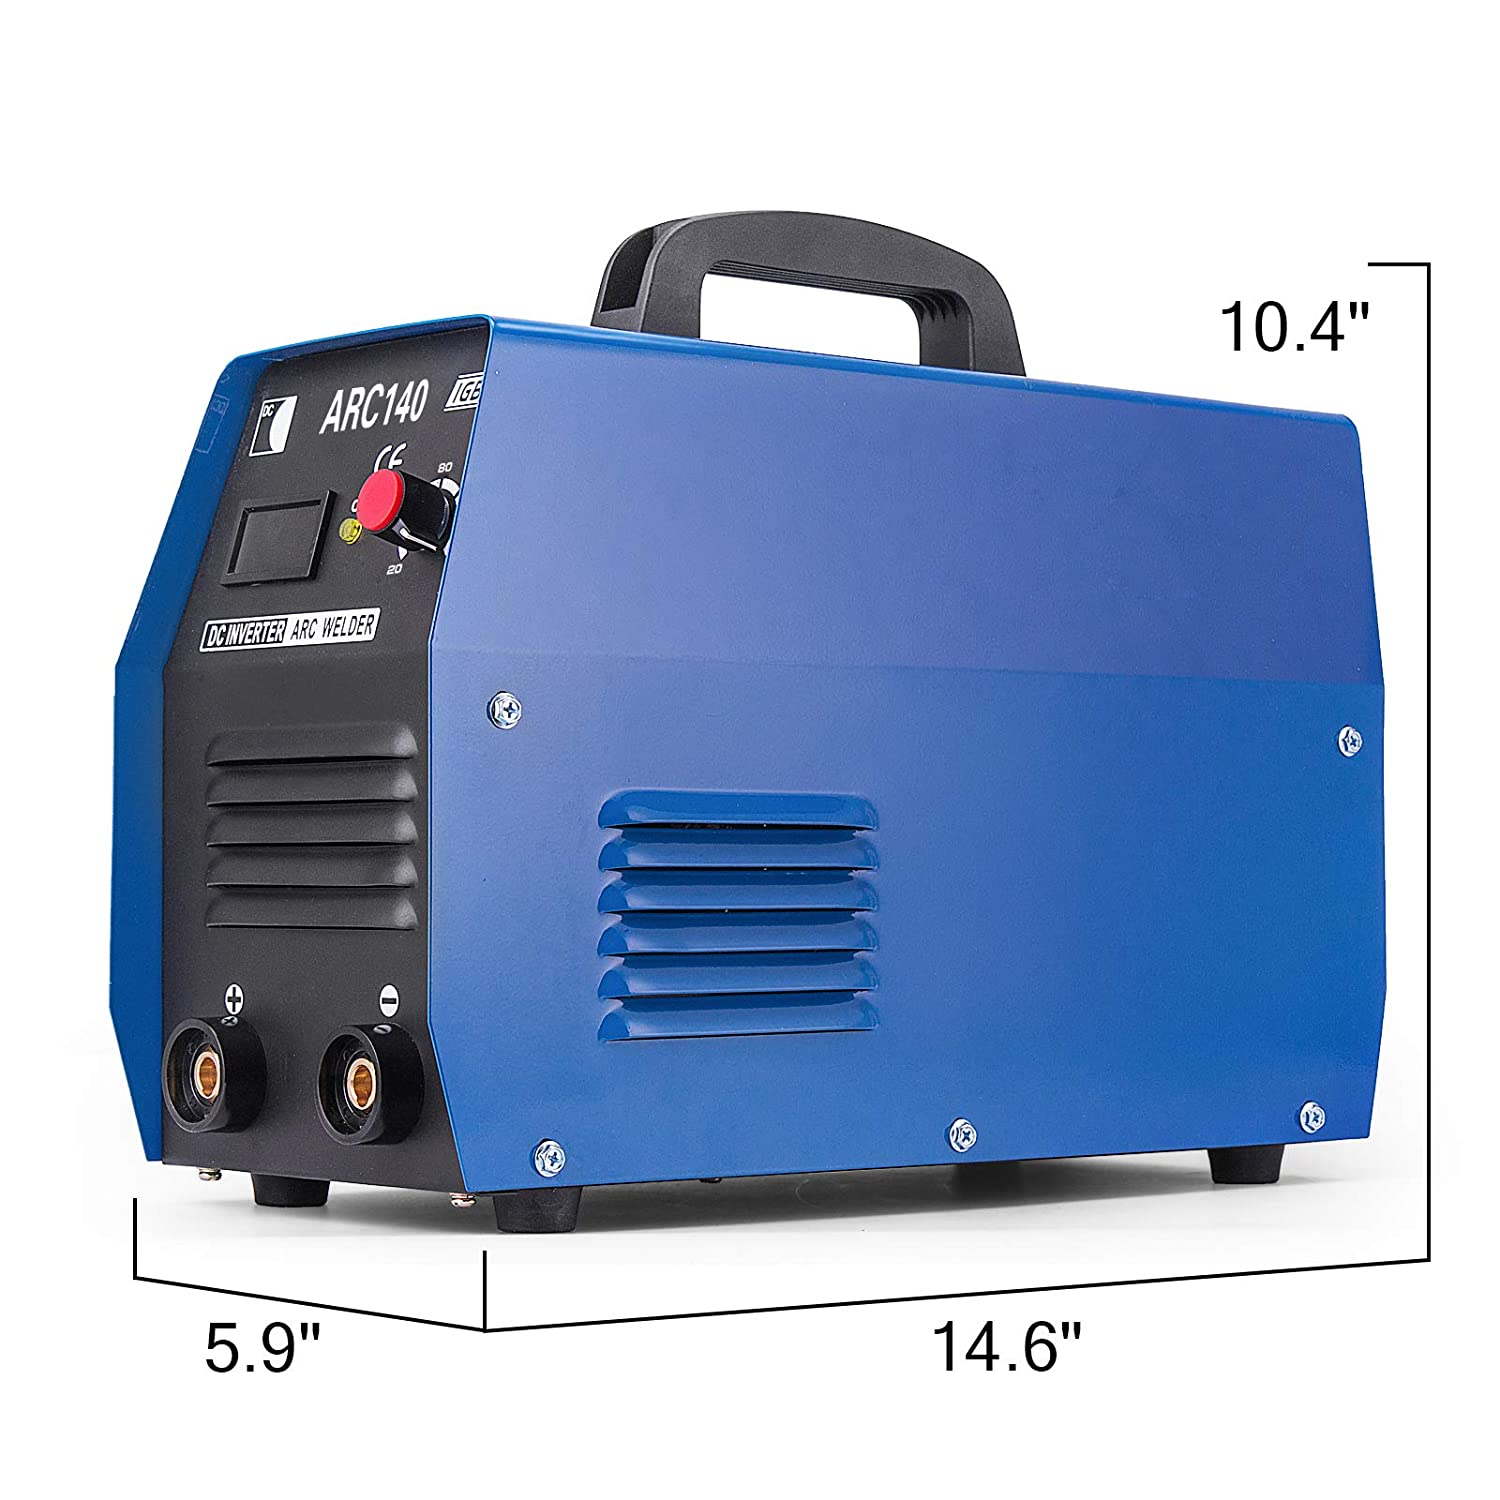 Mophorn 140A ARC Welder 110V ARC Welding Machine ARC-140 Anti-Stick Electric Welder Machine ARC IGBT Digital Display LCD DC Inverter Welder Inverter Welding ...